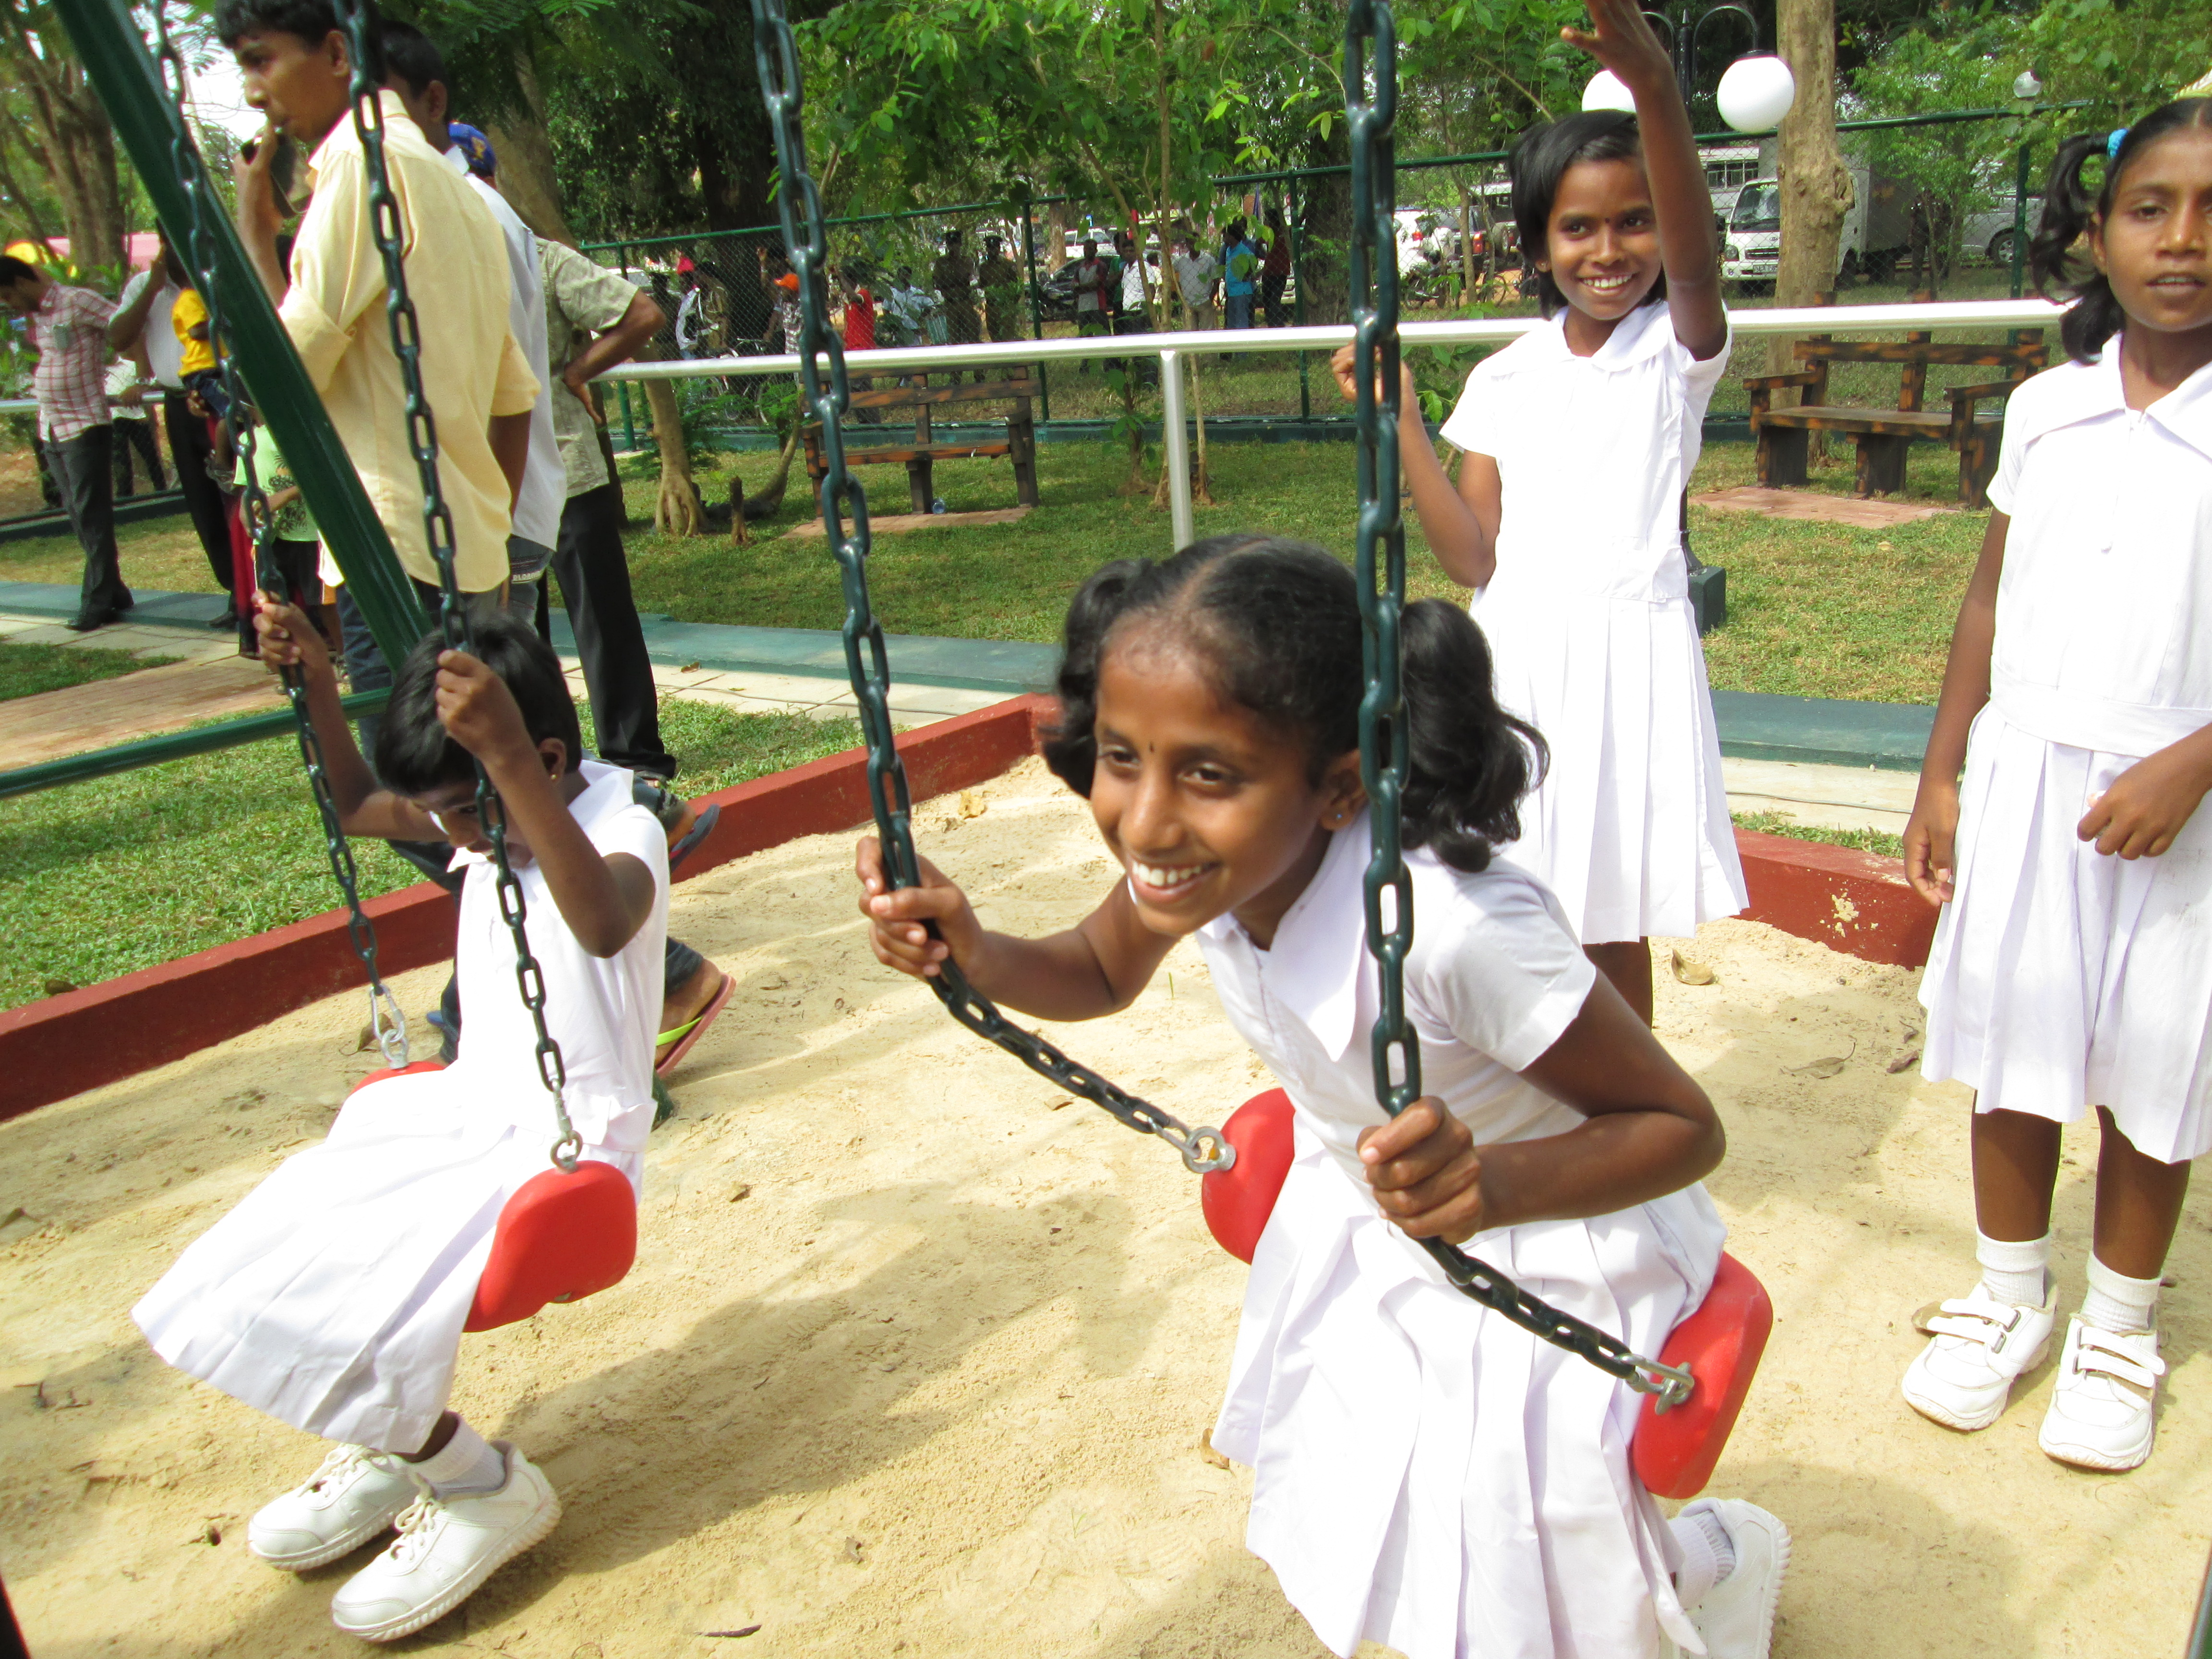 Tamil and Muslim children play at the new Kilinochchi Children's Park.